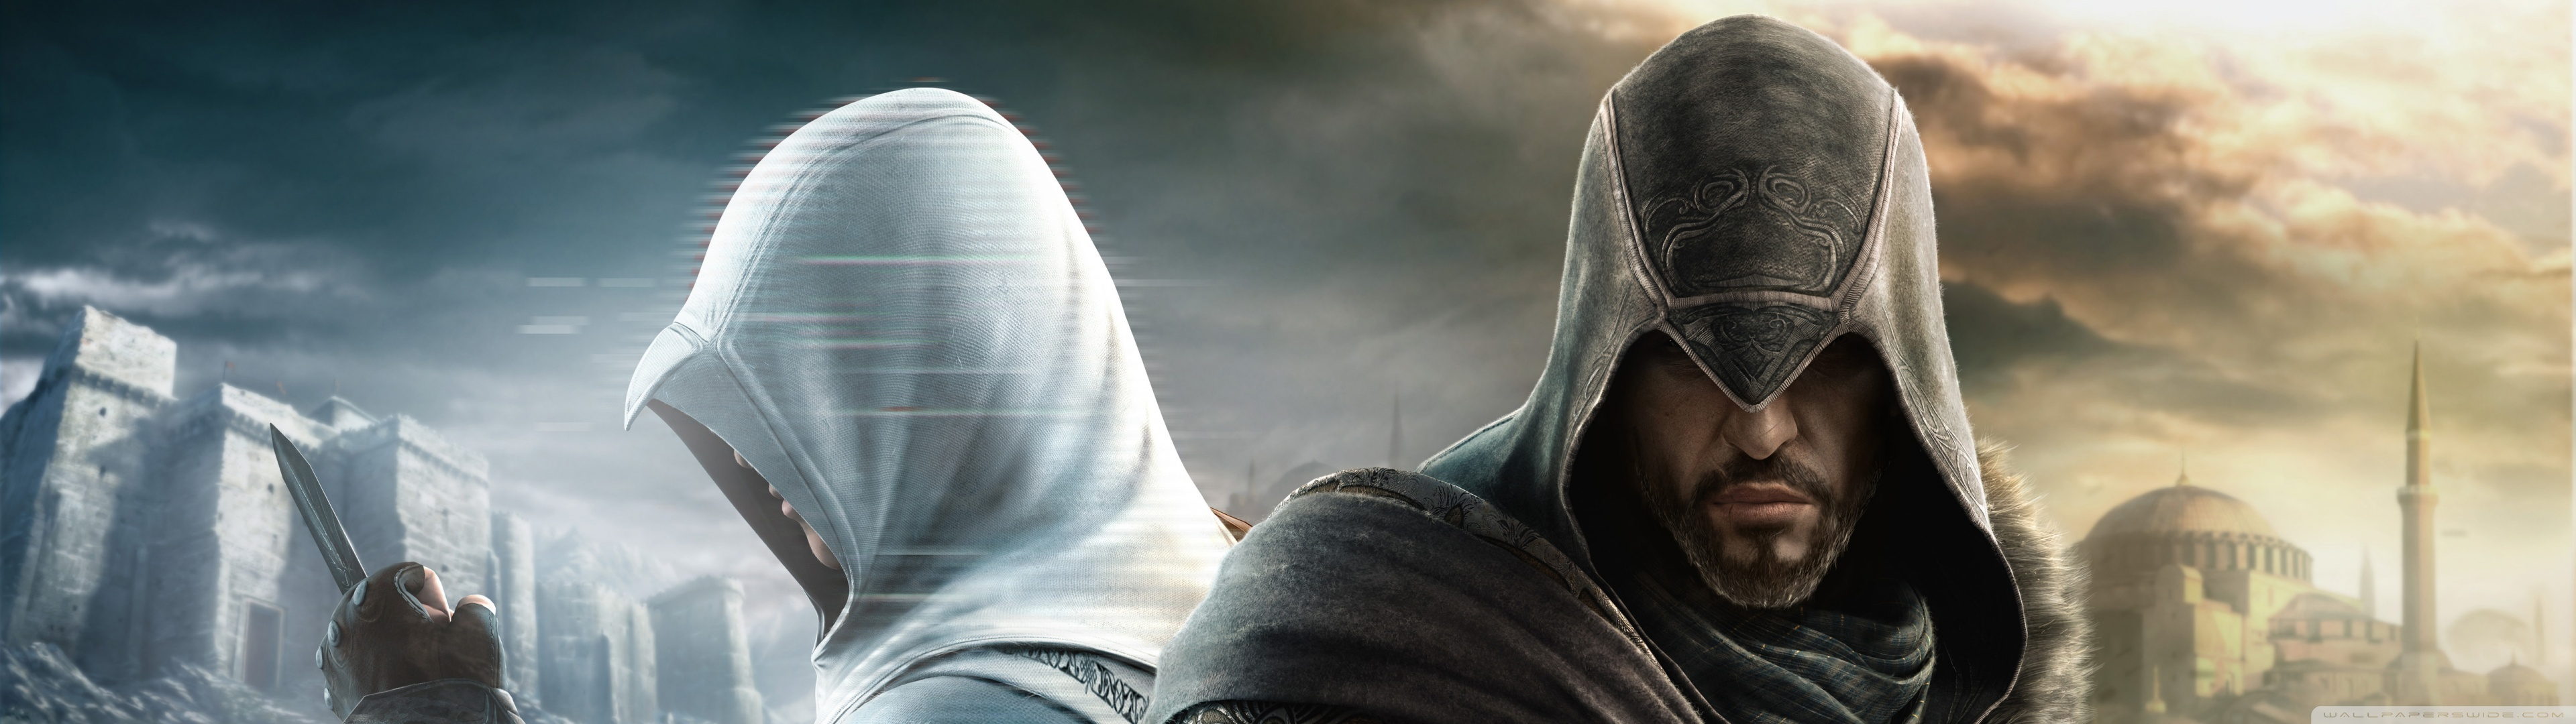 assassins creed multiscreen HD Wallpaper